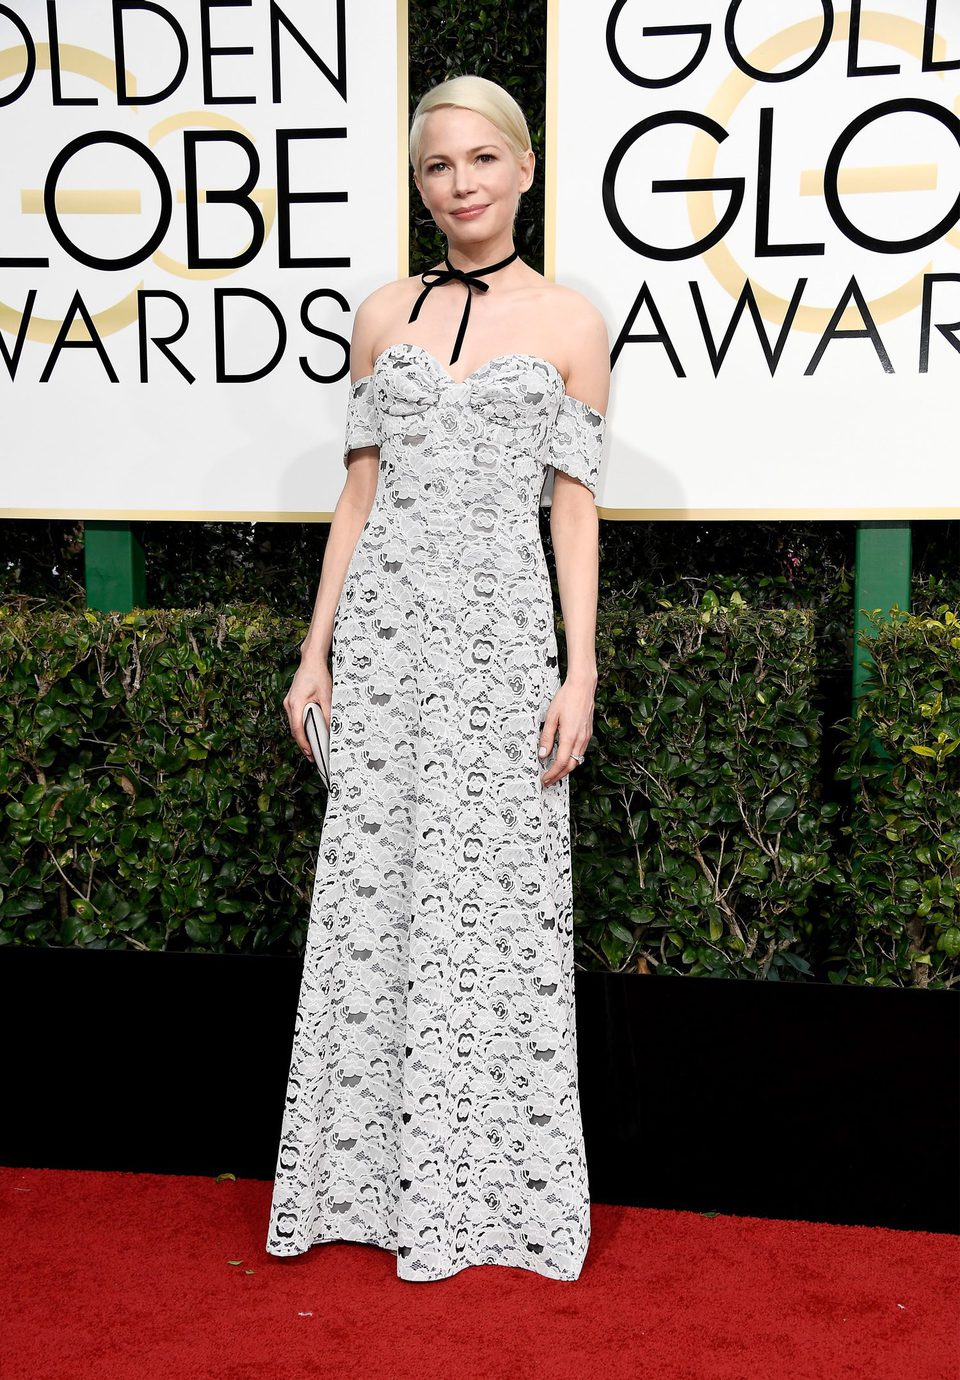 Michelle Williams at Golden Globes 2017 red carpet